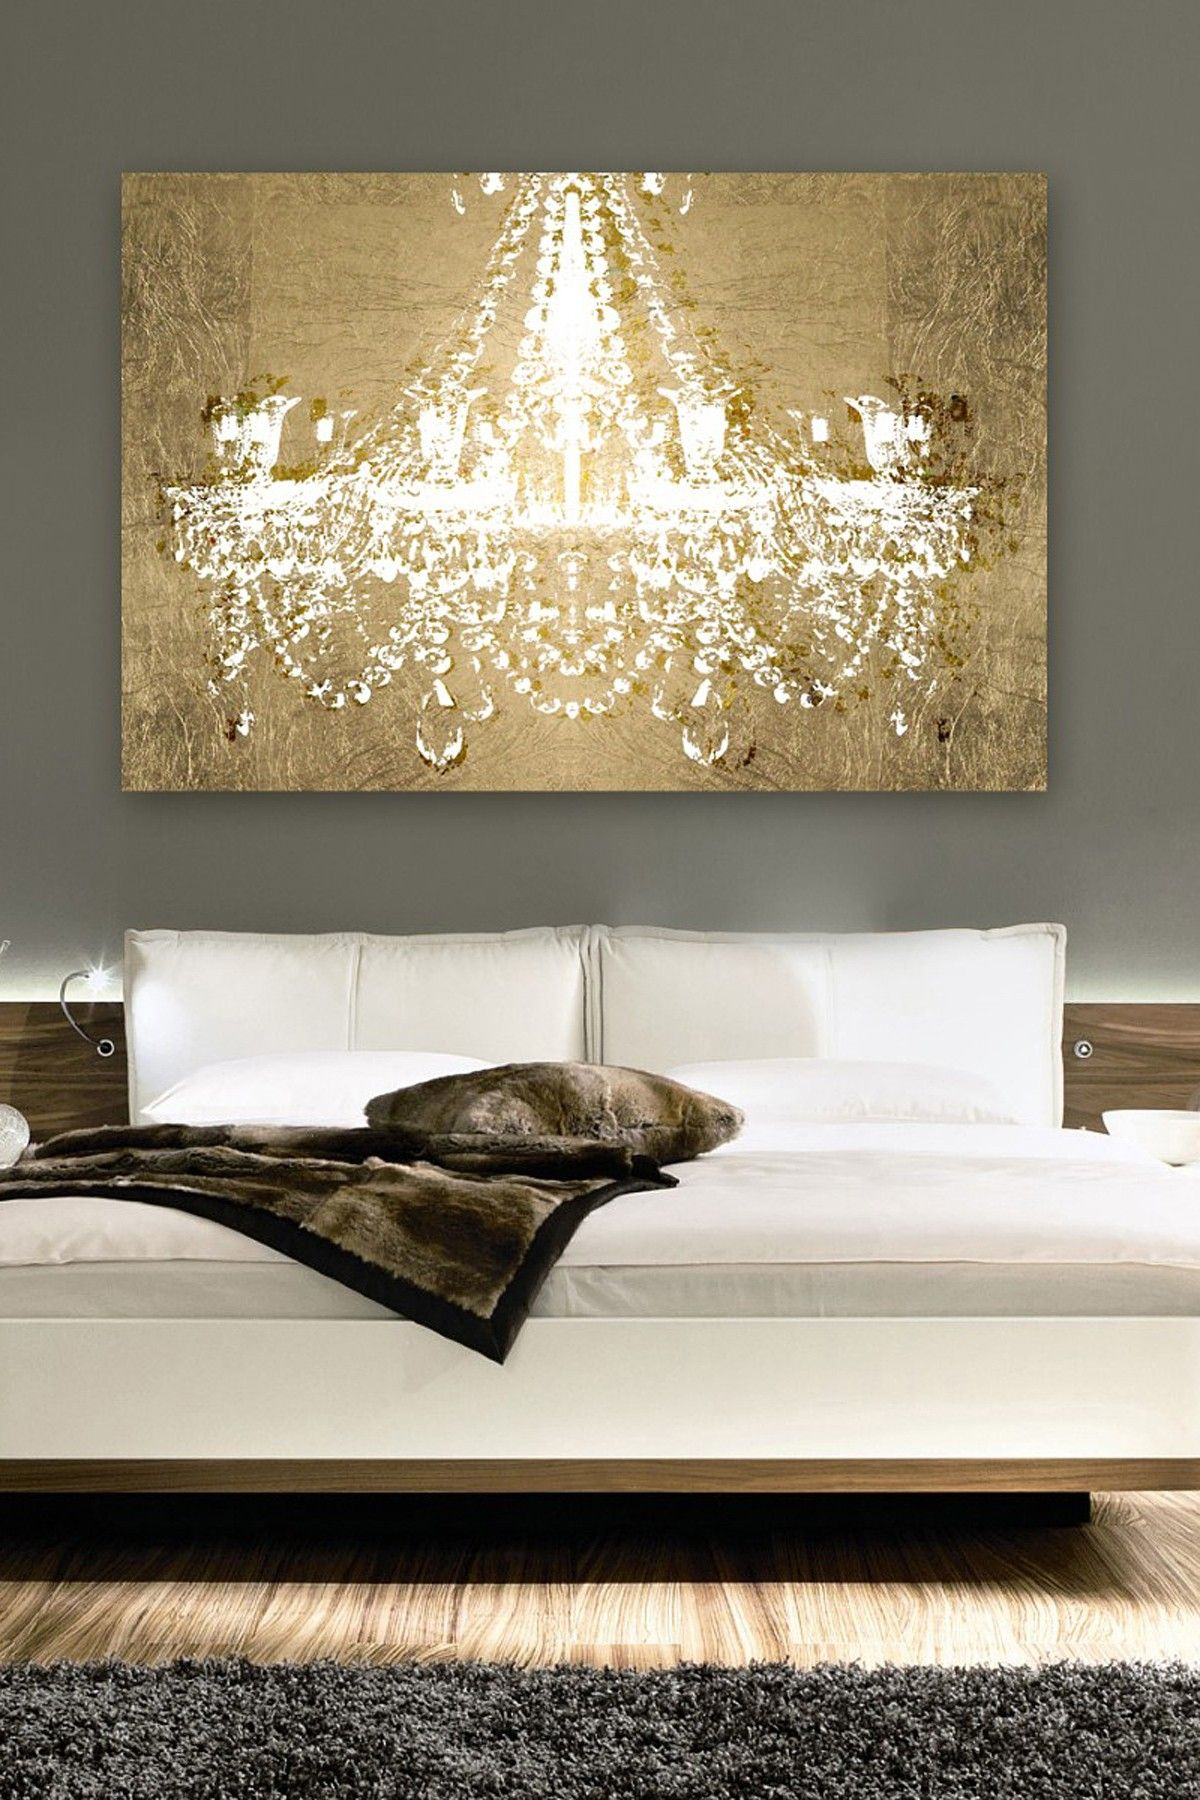 metallic arts decor intended photos view gallery wall monsoon floral canvas attachment and for art of chandelier